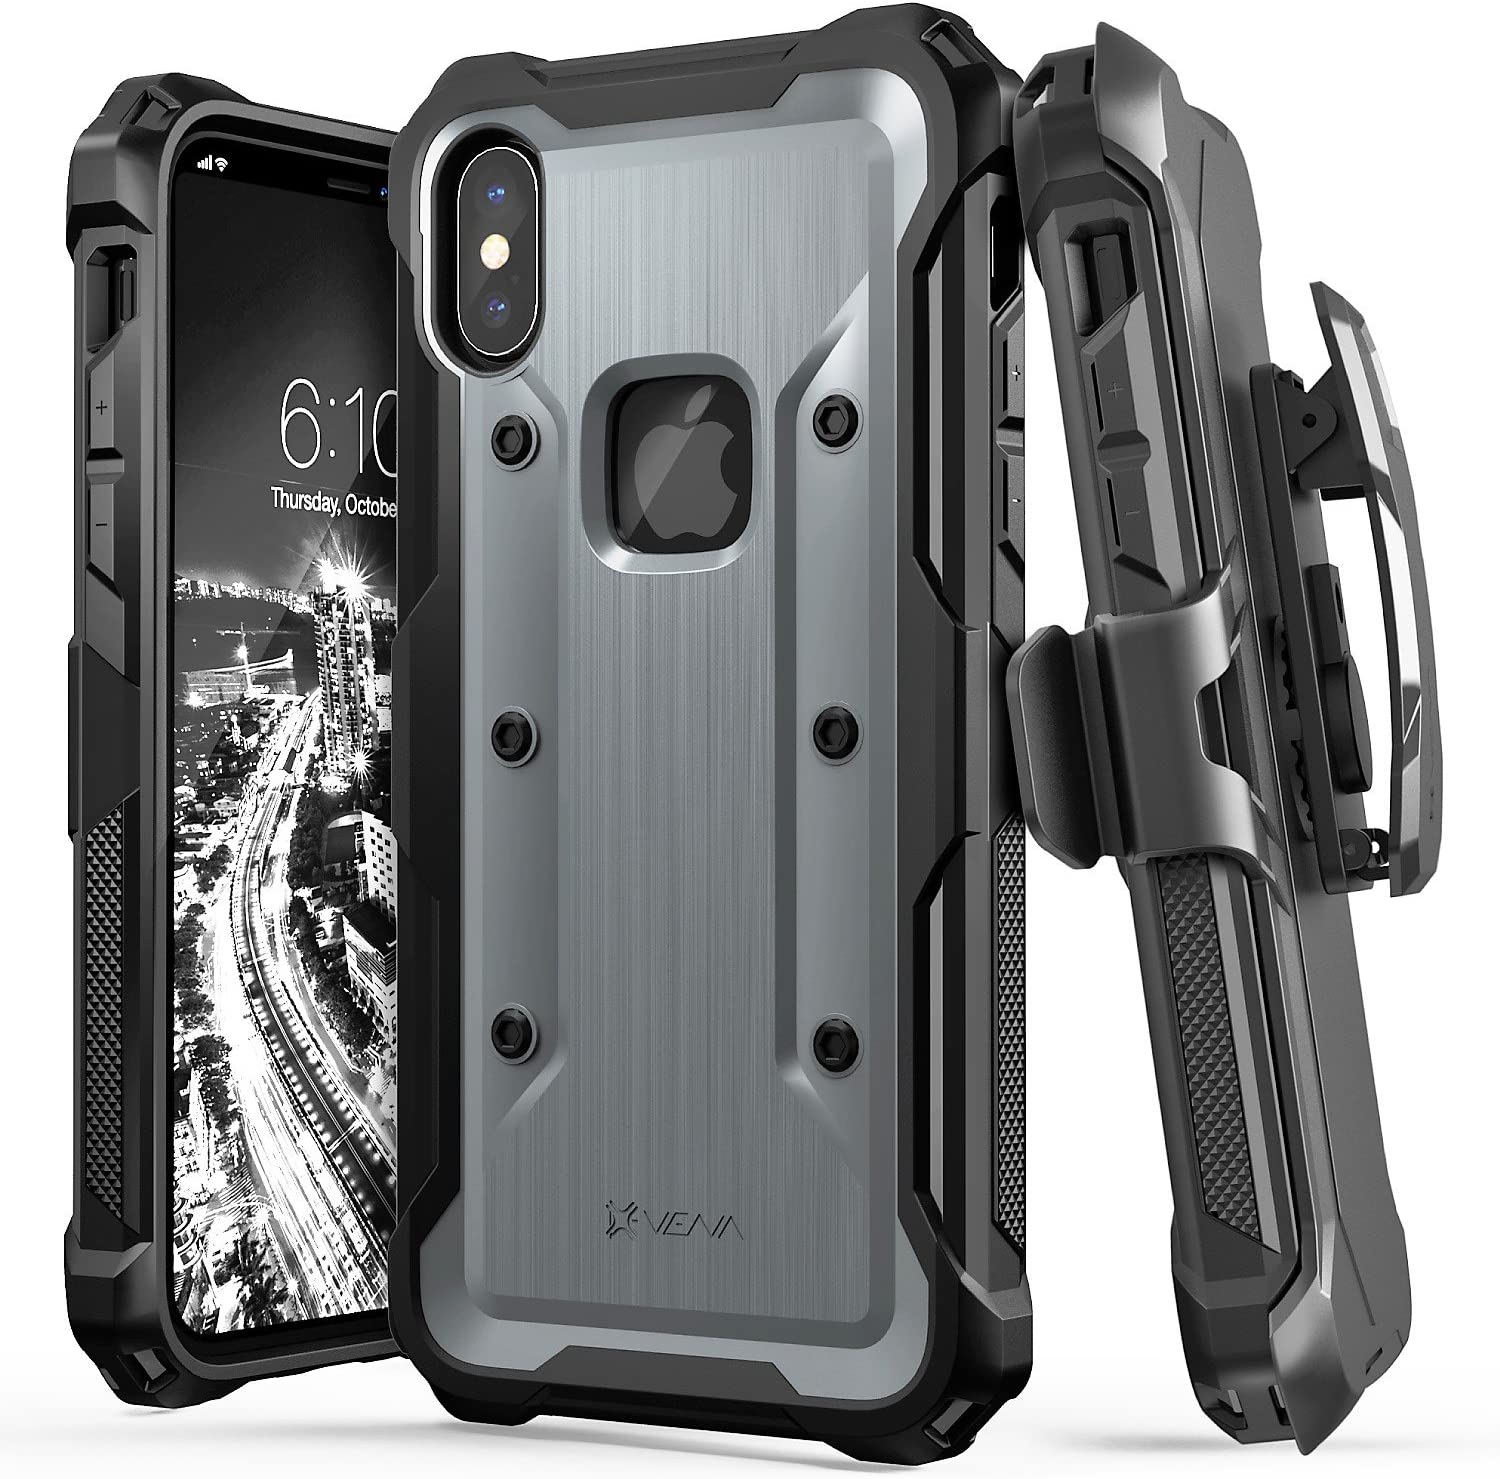 vArmor Compatible with iPhone XR Vena iPhone XR Holster Case, Rugged Military Grade Heavy Duty Case with Belt Clip Swivel Holster /& Kickstand Black//Space Gray